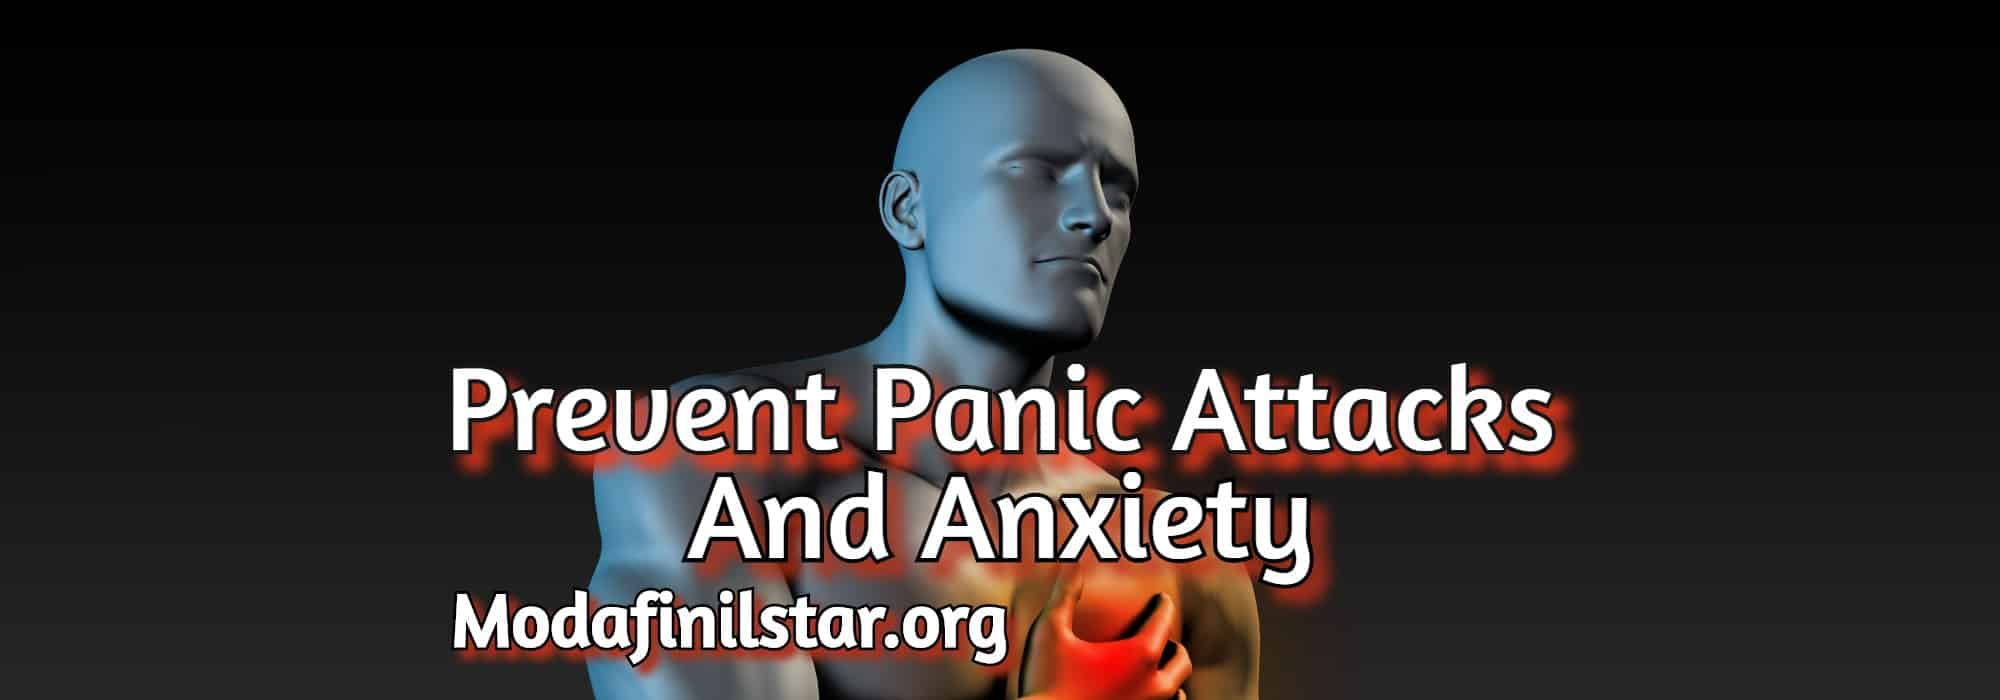 Prevent Panic Attacks and Anxiety